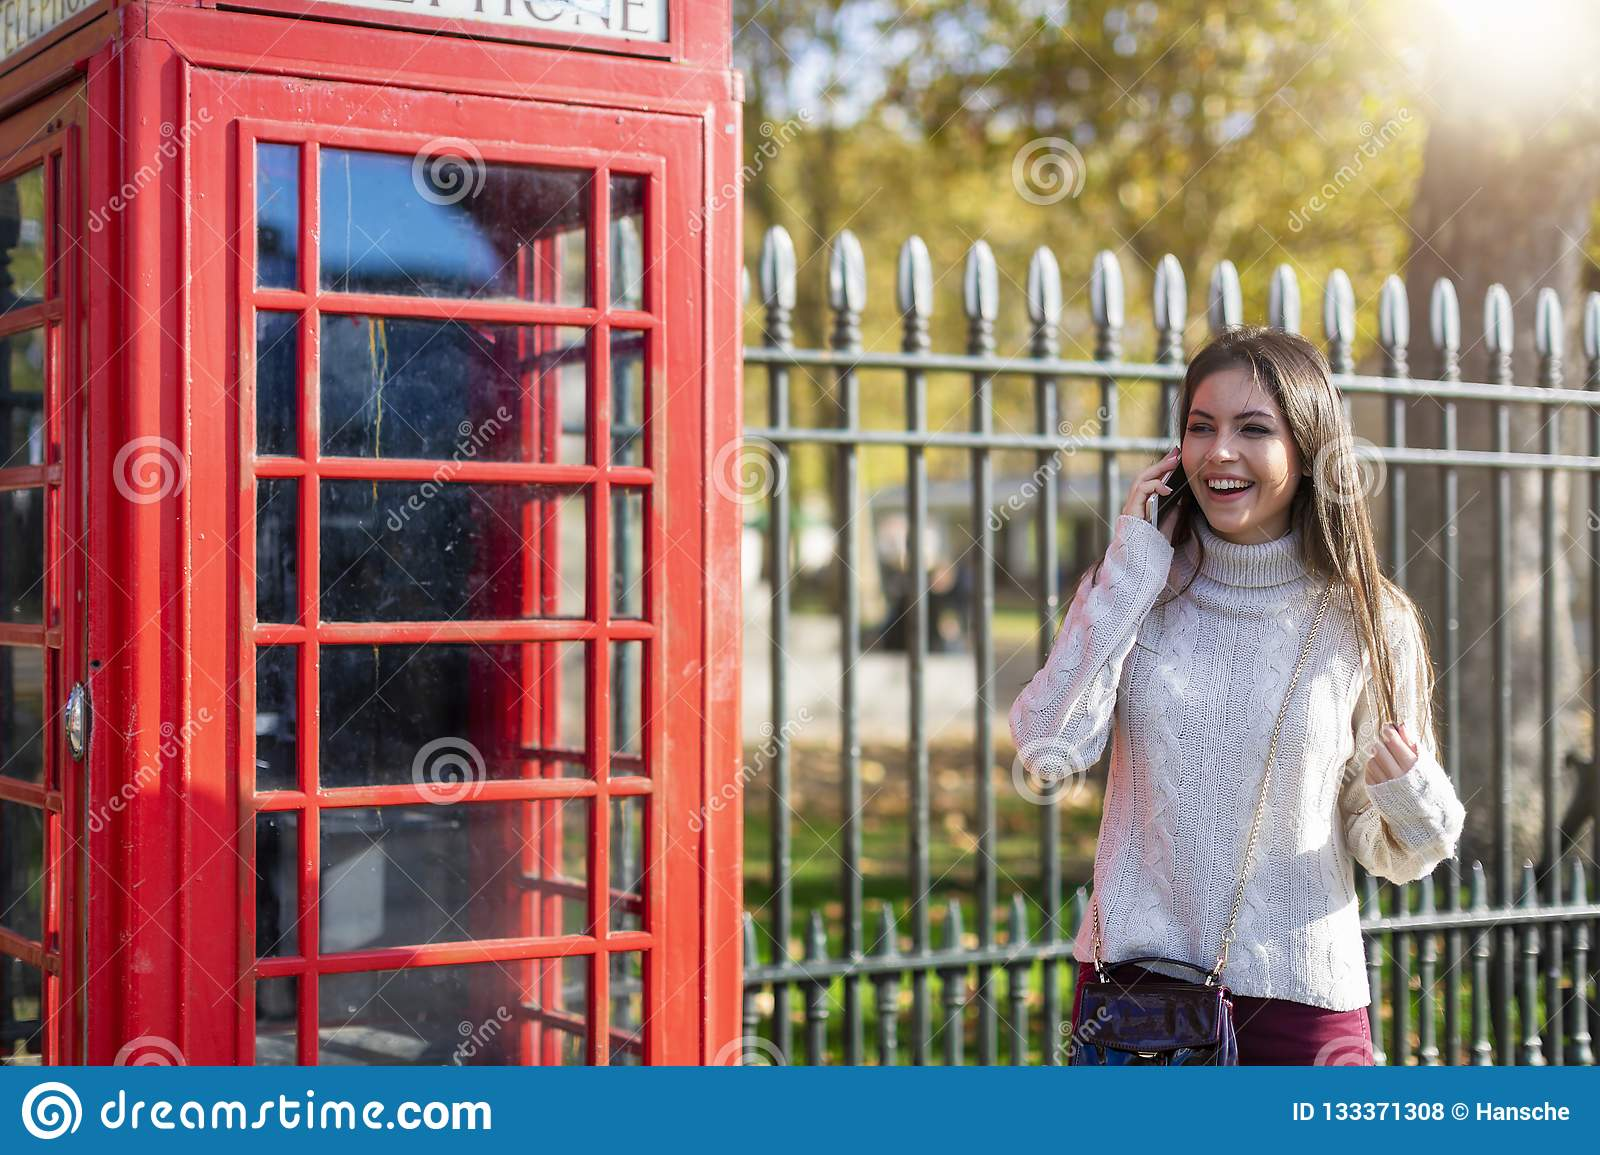 Traveler woman talks on her cellphone next to a red telephone booth in London, UK